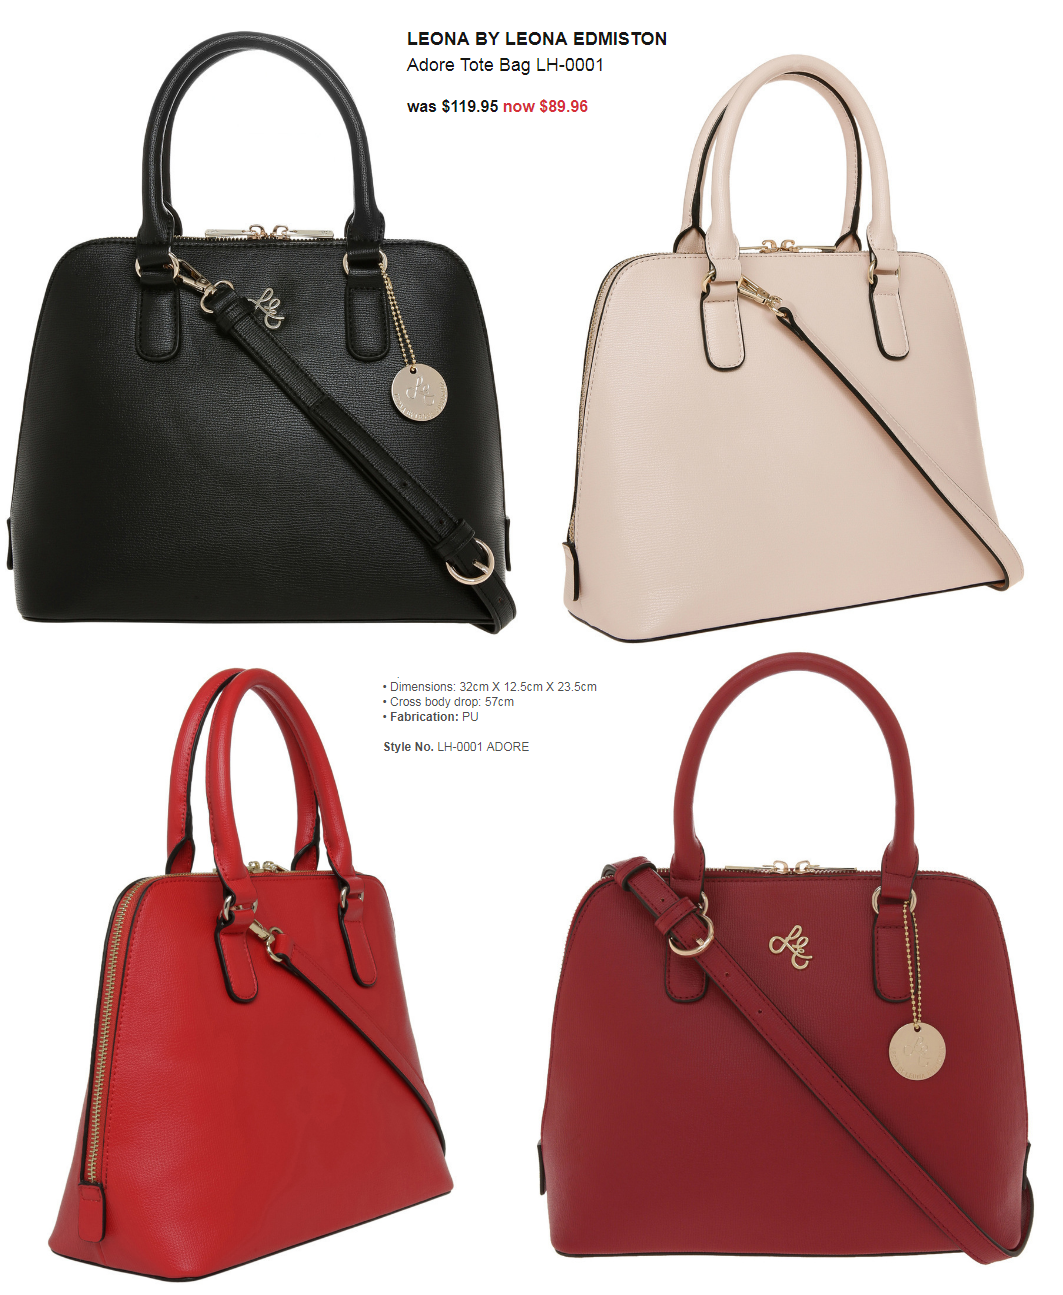 Leona By Edmiston Lh 0001 Adore Tote Bag Was 119 95 Now 89 96